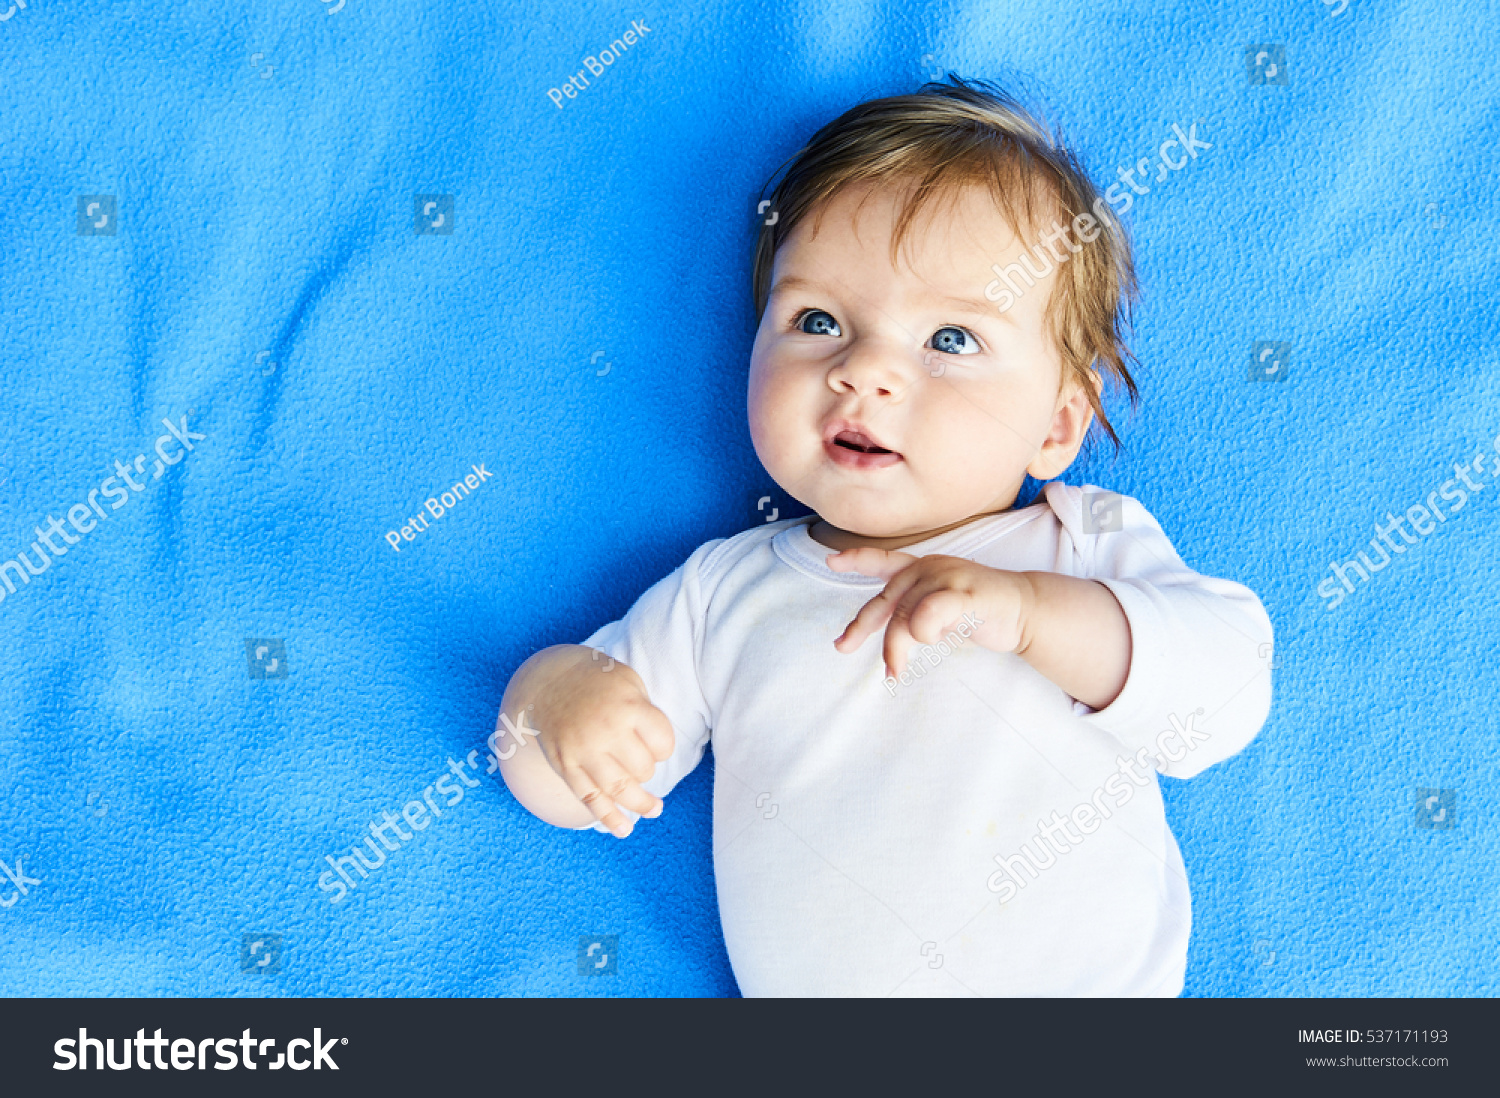 Newborn Babies With Blue Eyes Newborn Baby Girl Blue Eyes Beautiful Stock Photo Edit Now